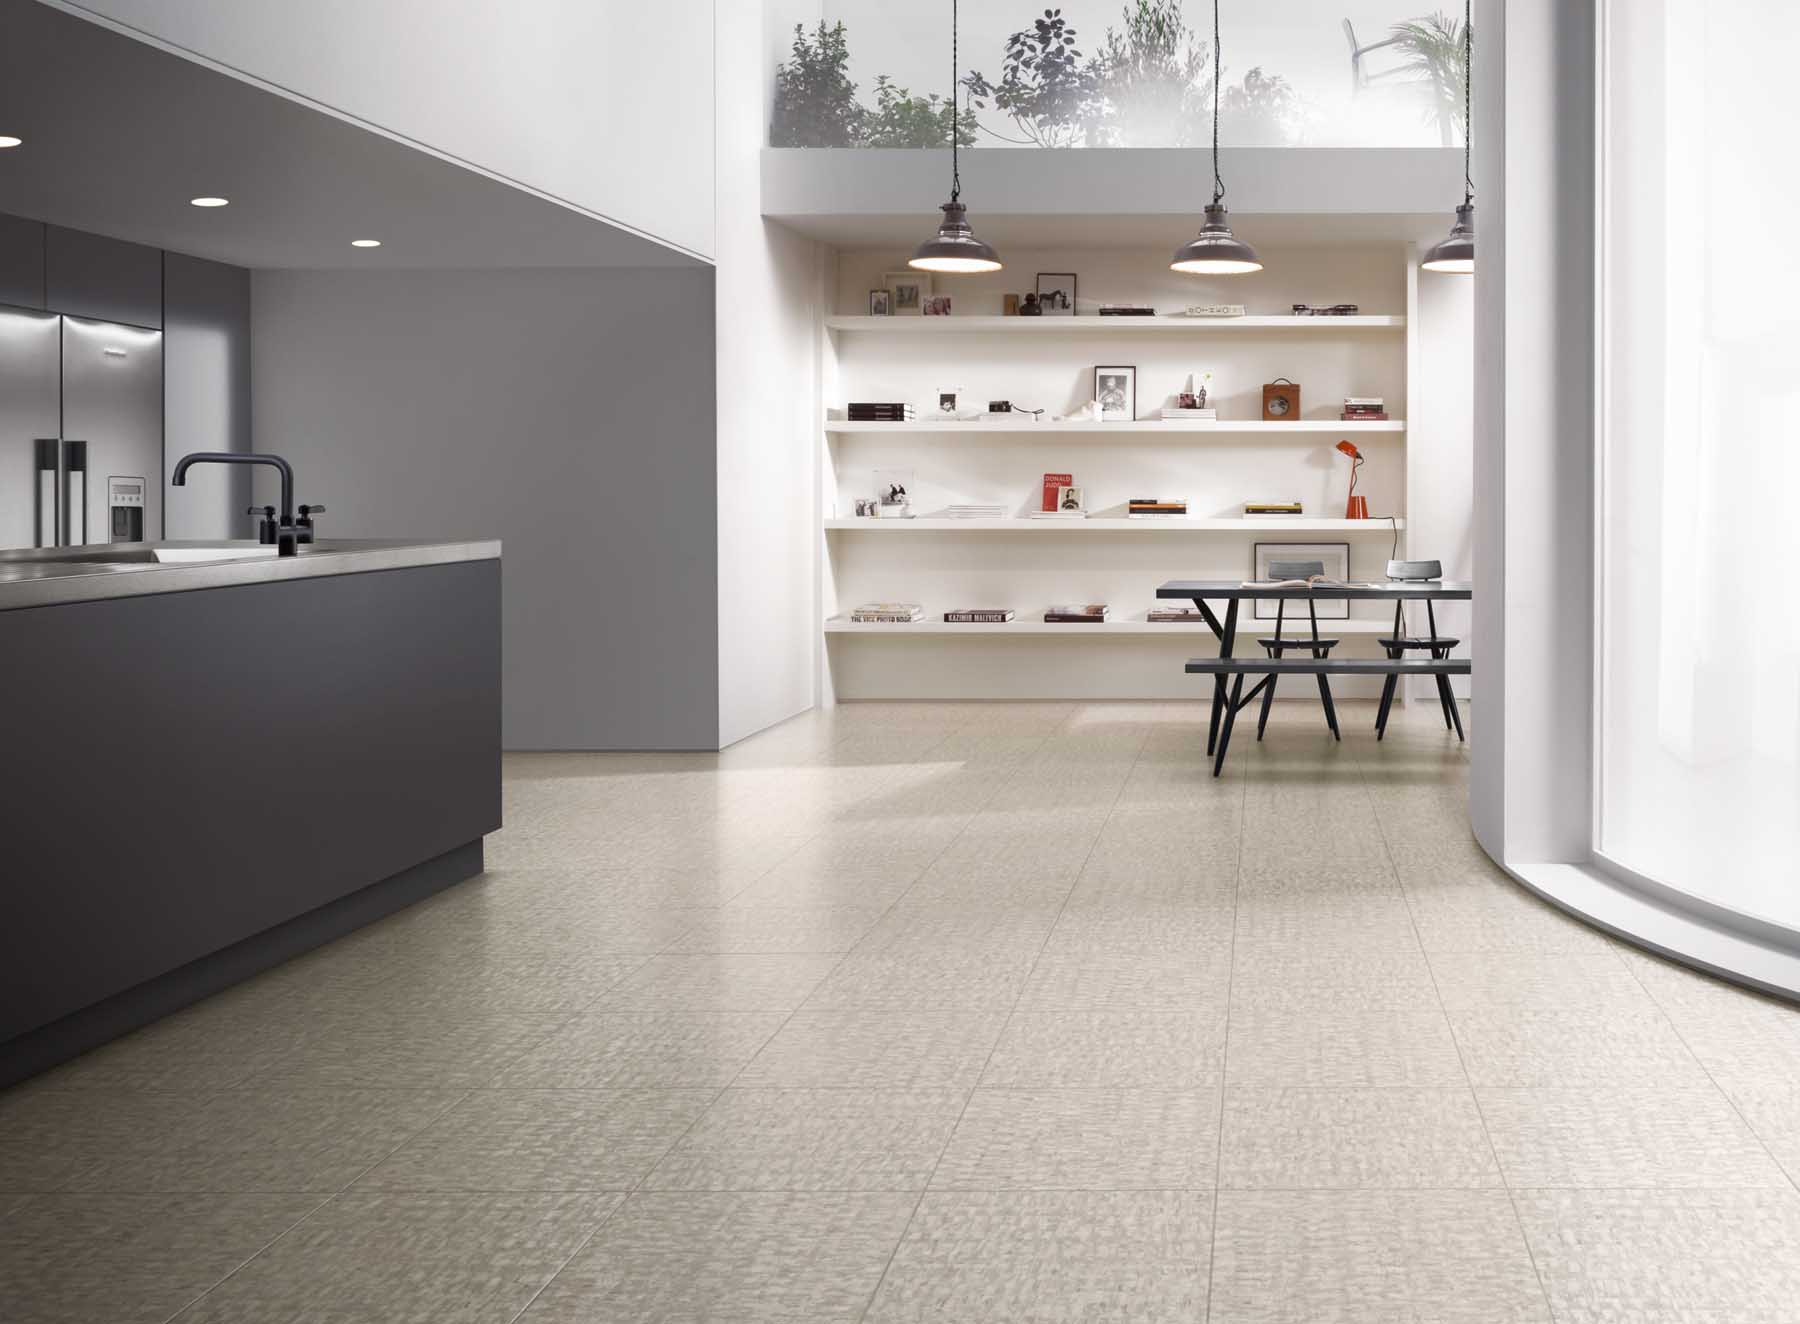 Kitchen Tiles Aberdeen inspire flooring aberdeen ~ inspirational floors in aberdeenshire